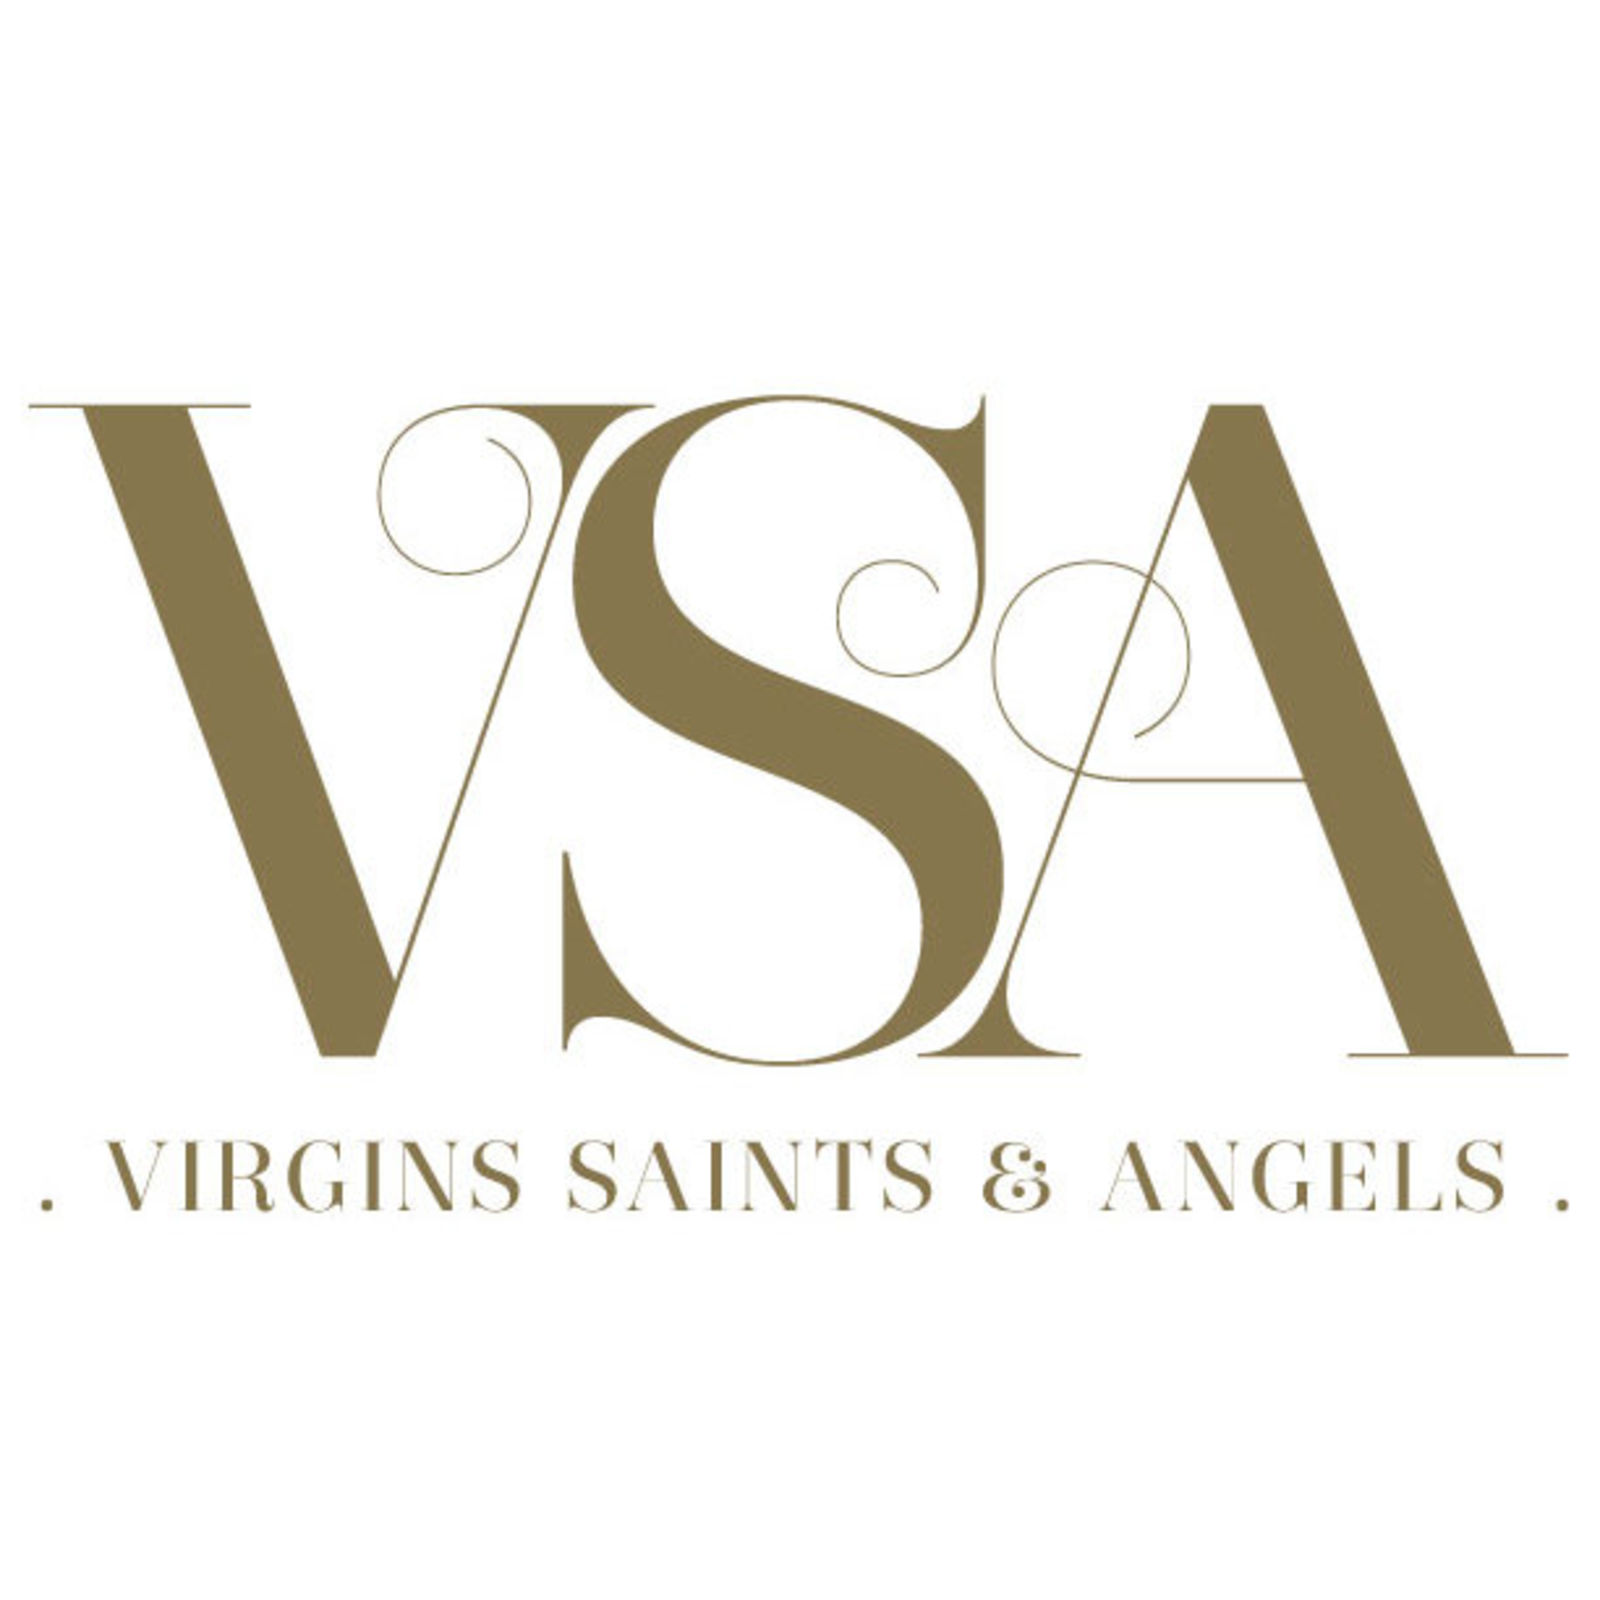 VIRGINS SAINTS & ANGELS